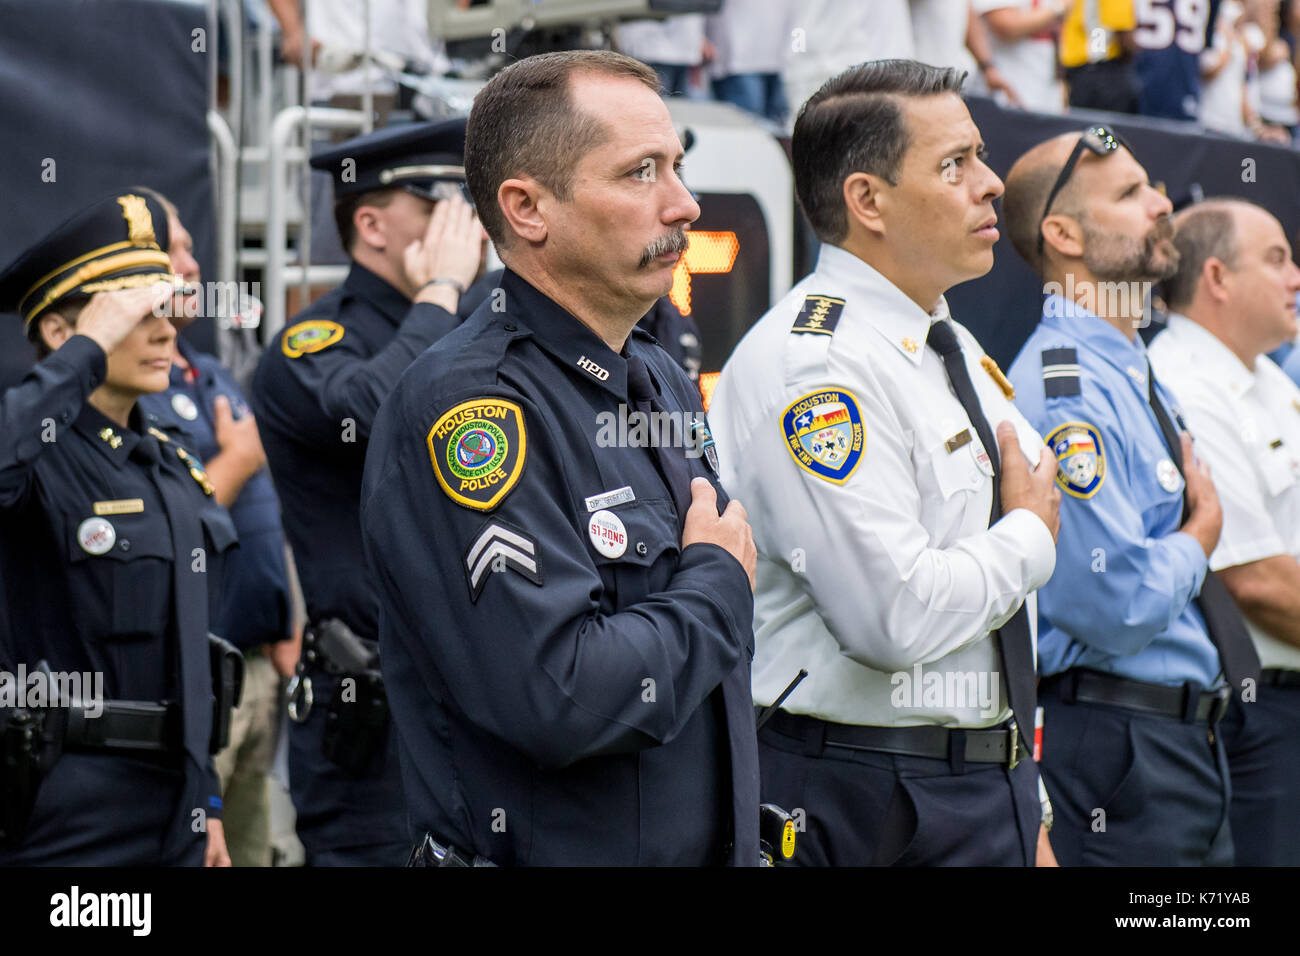 Houston, TX, USA. 10th Sep, 2017. Houston first-responders, including members of the Houston Police Department and Houston Fire Department, are recognized as they stand for the national anthem prior to an NFL football game between the Houston Texans and the Jacksonville Jaguars at NRG Stadium in Houston, TX. The Jaguars won the game 29-7.Trask Smith/CSM/Alamy Live News - Stock Image